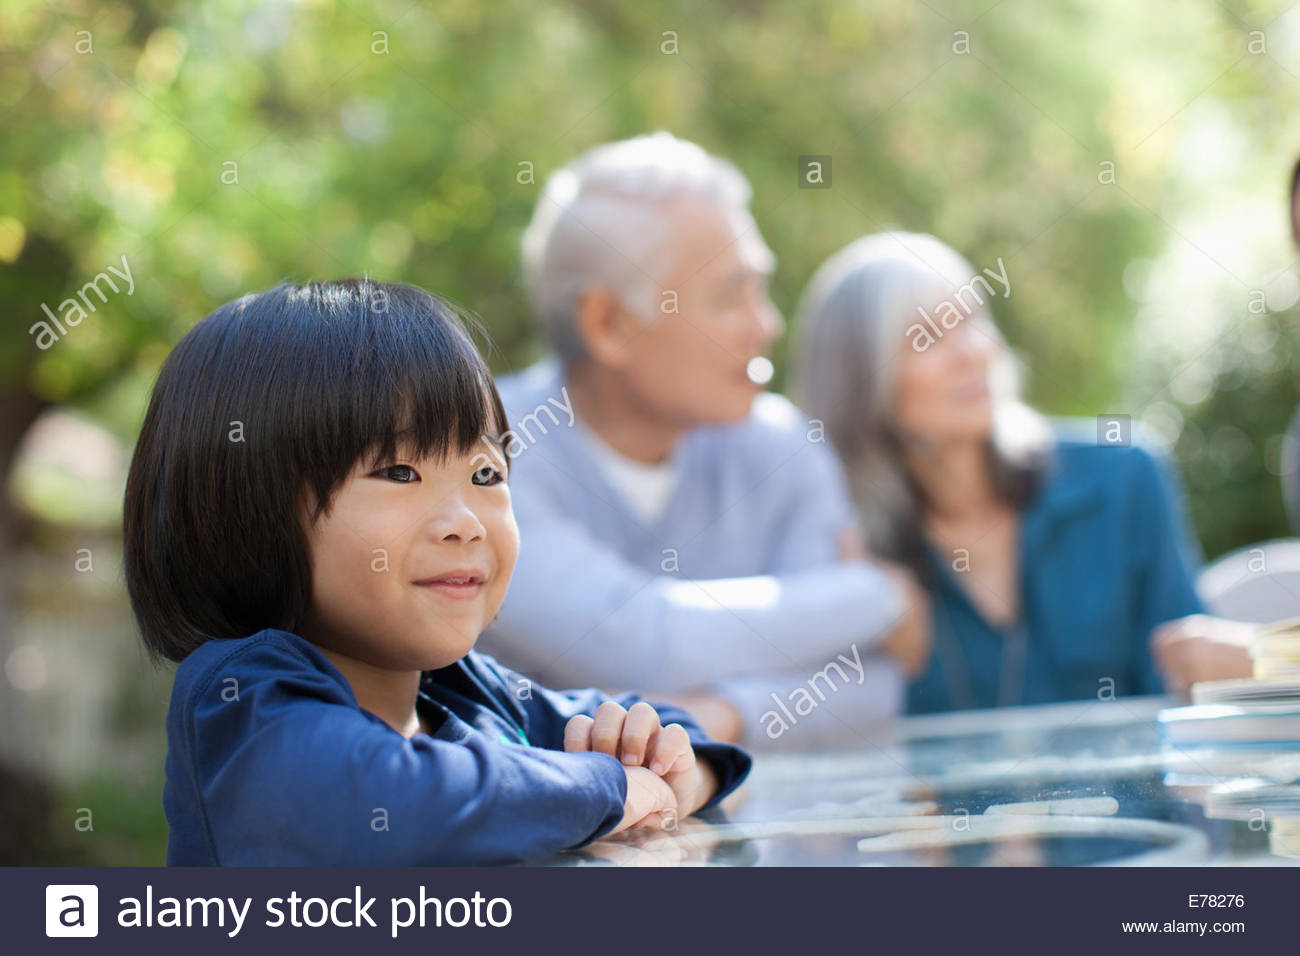 Smiling boy standing outdoors - Stock Image